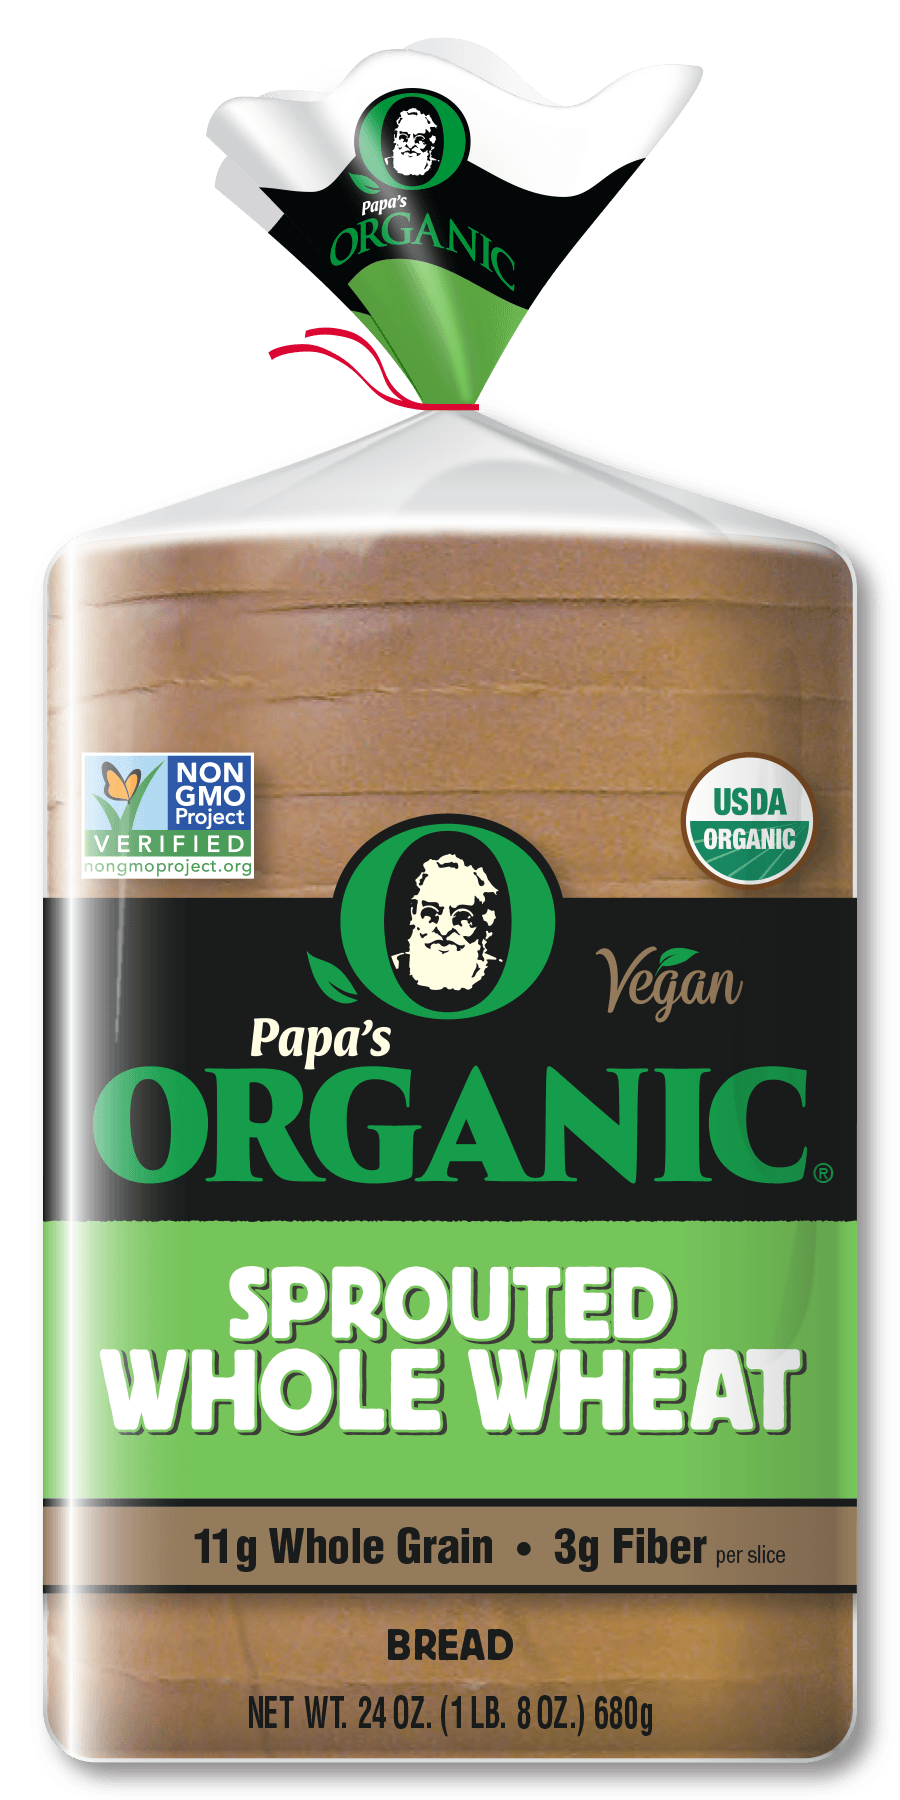 Papa's Organic Sprouted Wheat